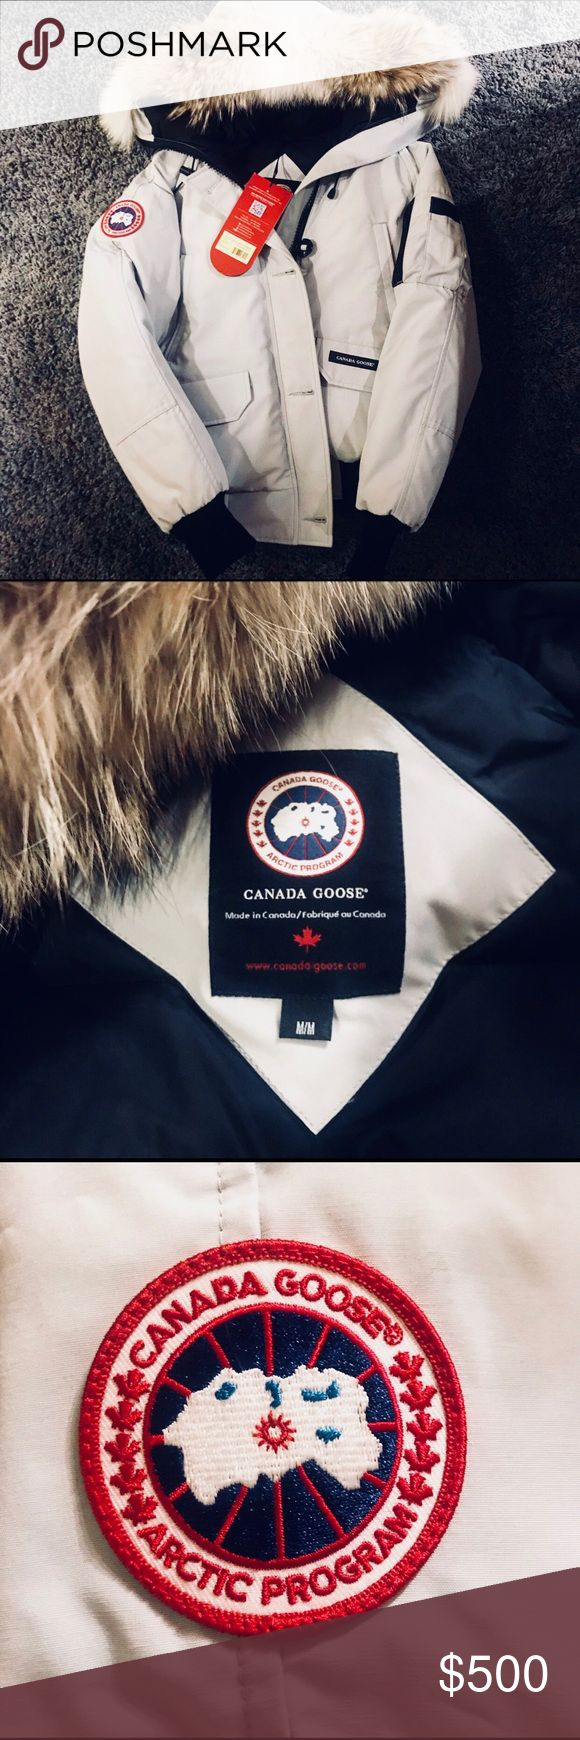 Ladies Chilliwack Bomber Size M NWT! Listed online at $750... selling this gorgeous bomber jacket to a lucky lady who needs to keep warm this winter. This bomber will definitely keep you cozy and looking hott and stylish. We love Canada Goose! $500 is as low as I will go so that Posh can verify that it is AUTHENTIC. Color is Silverbirch. Canada Goose Jackets & Coats